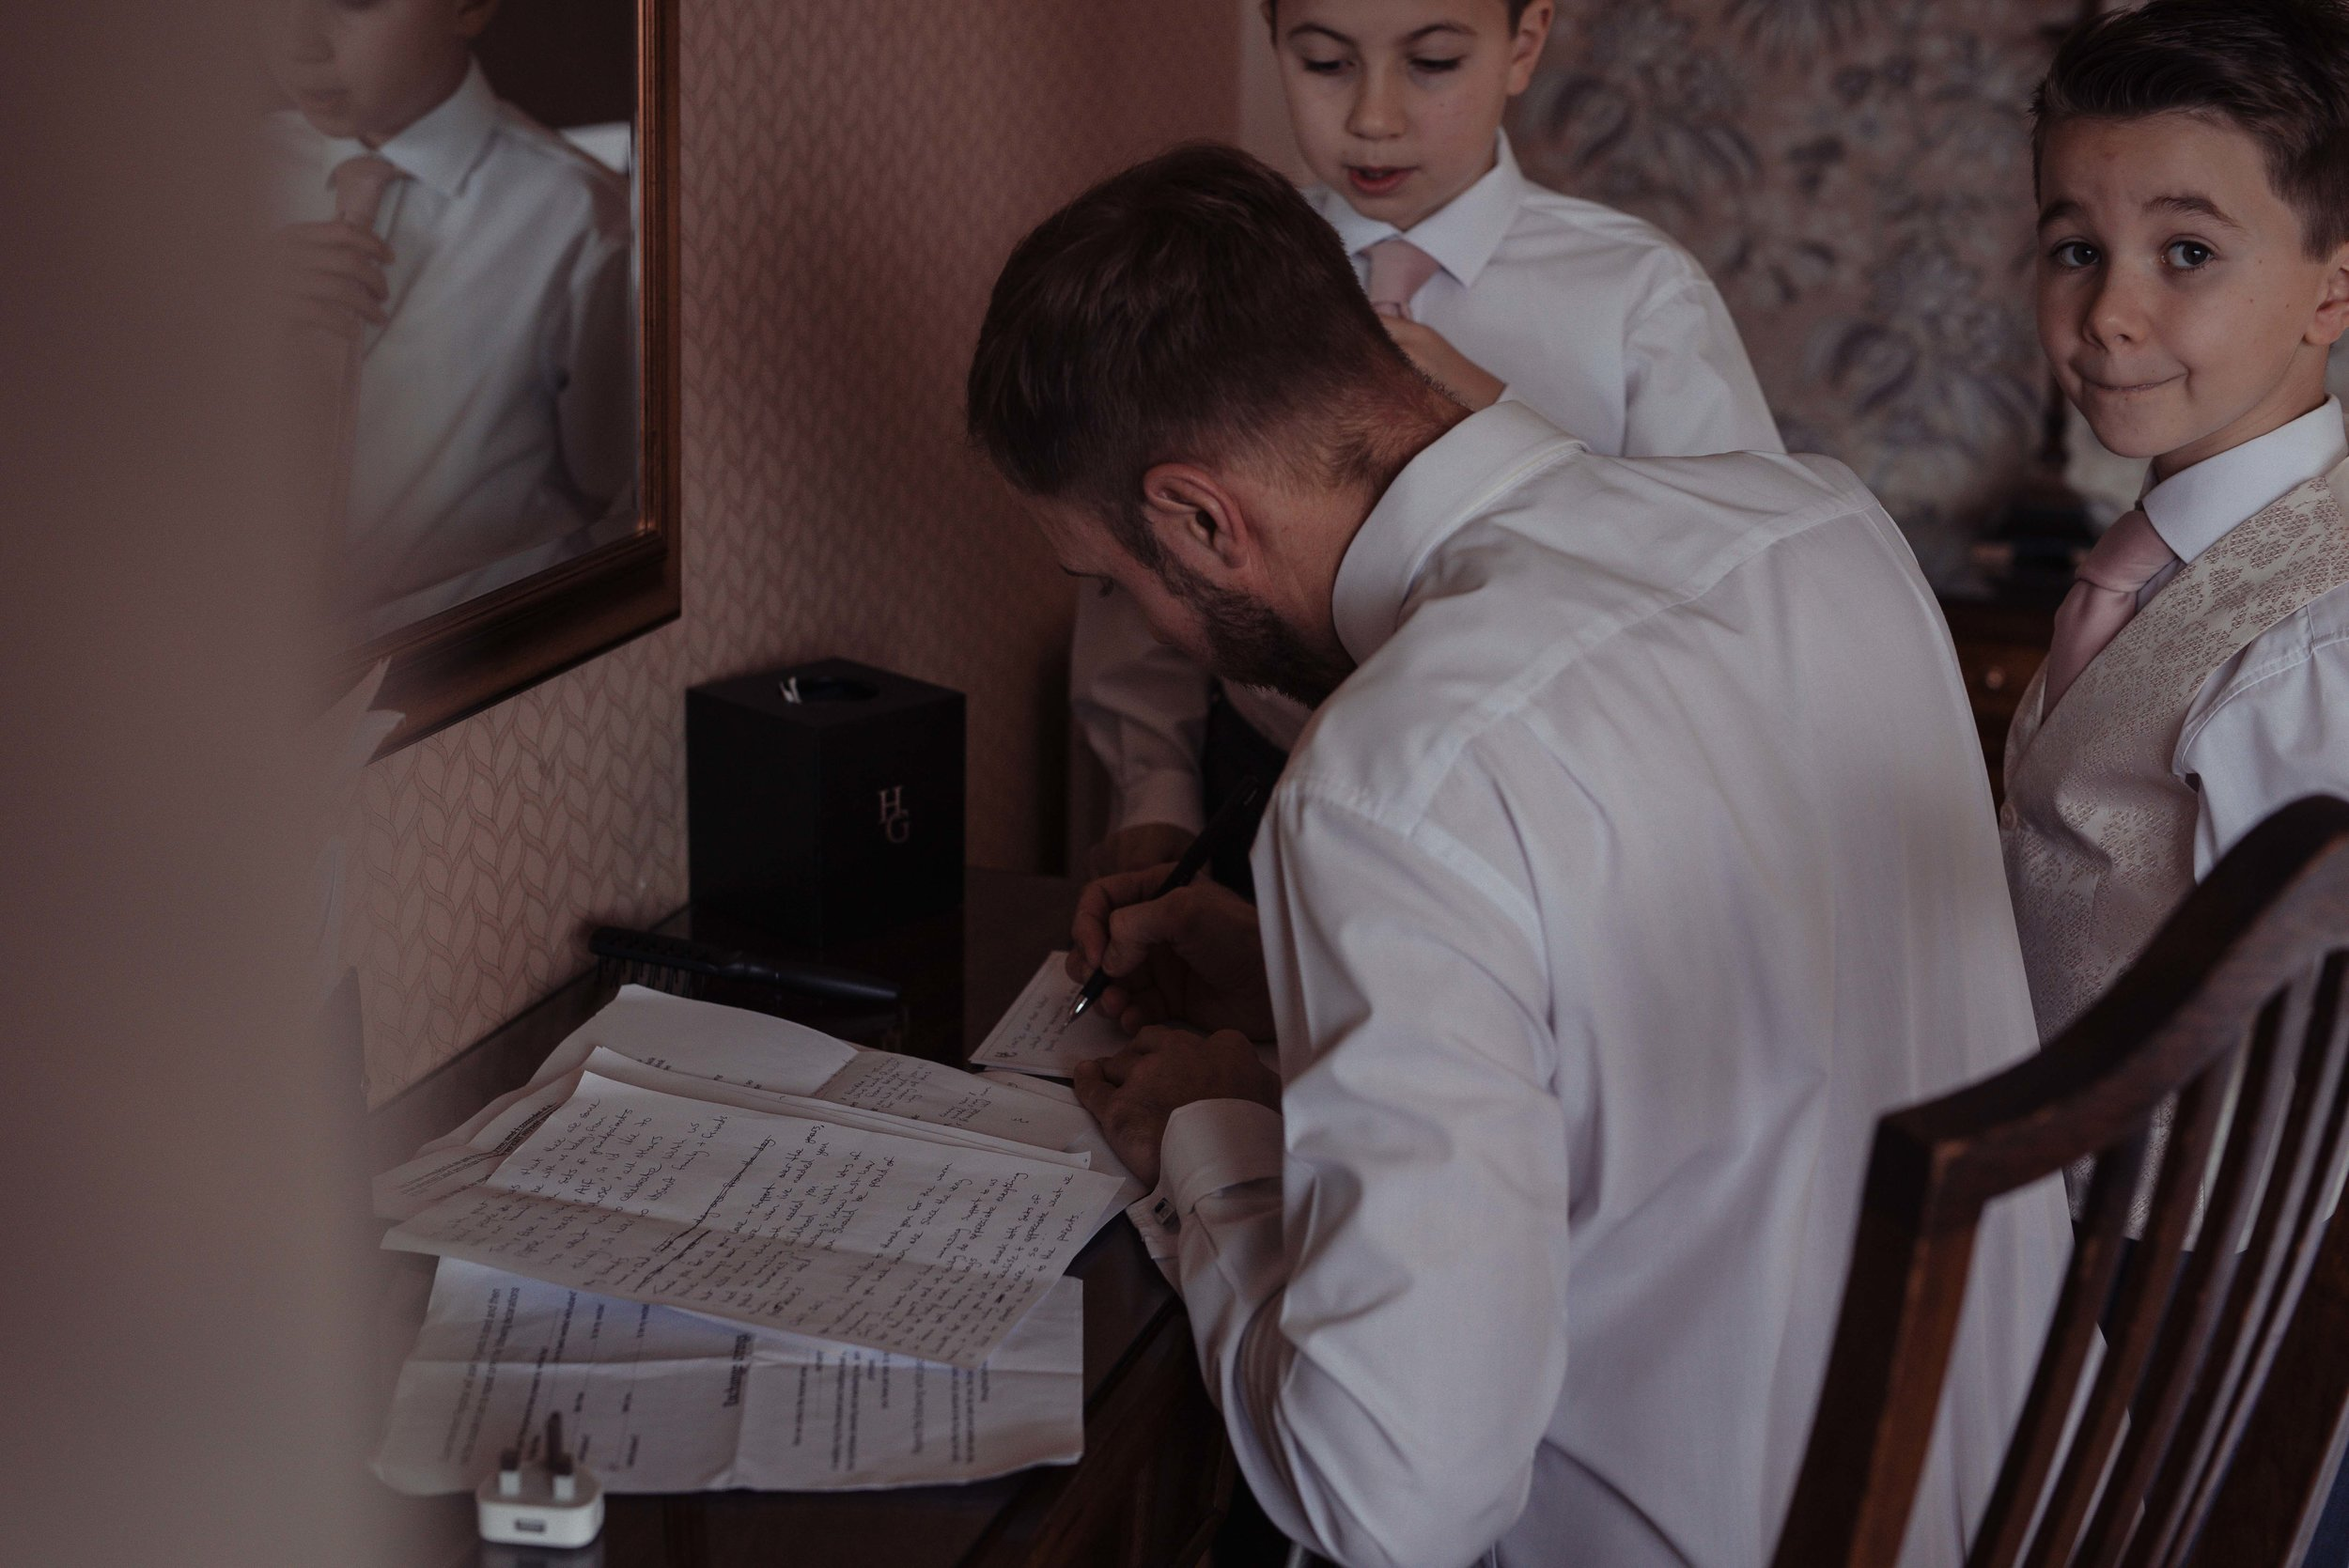 The groom writing his speech a few minutes before the wedding ceremony, with his children watching him